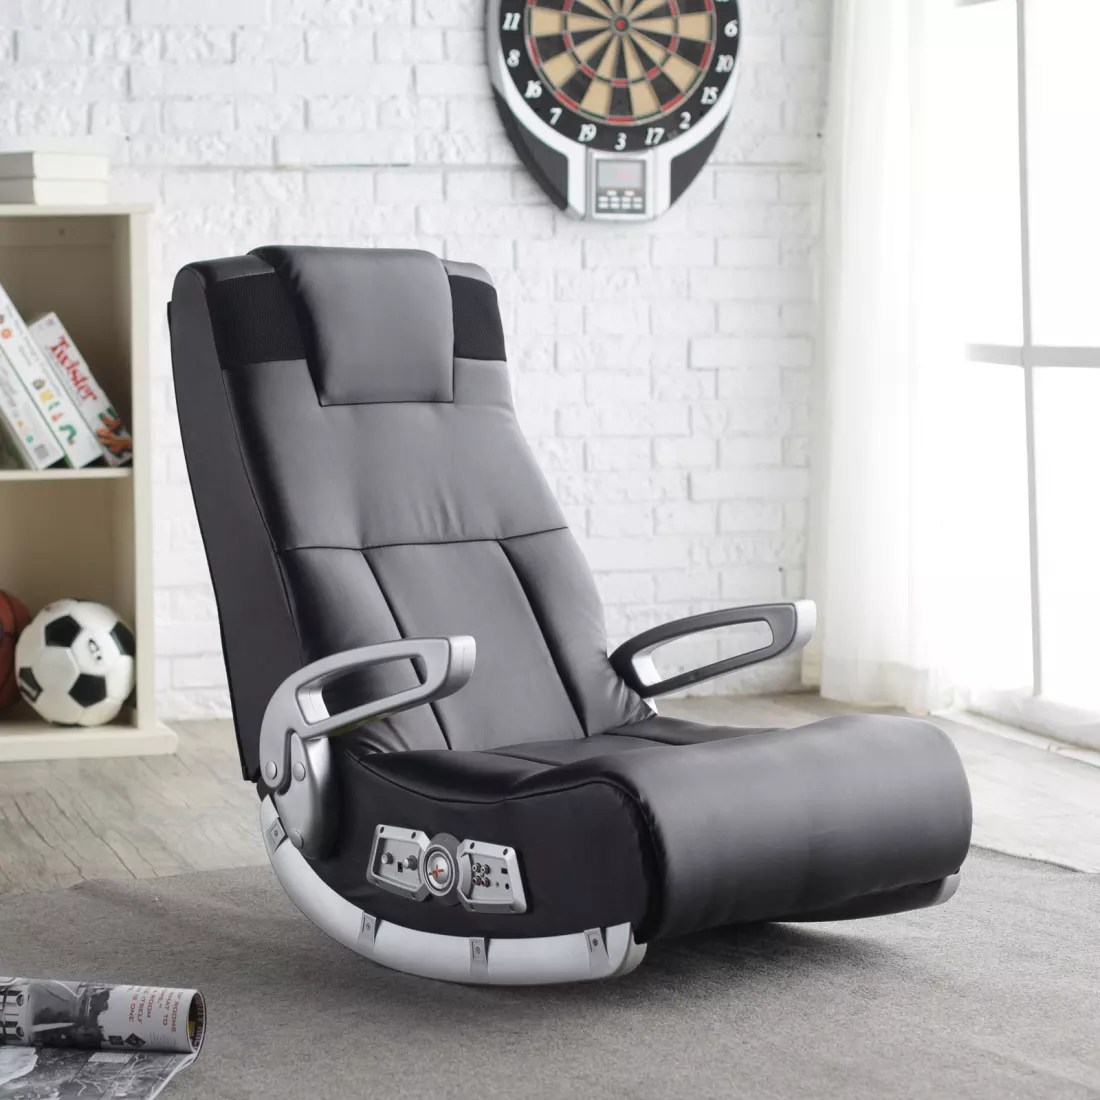 Most Comfortable Chair For Gaming Most Comfortable Gaming Chairs Geeks